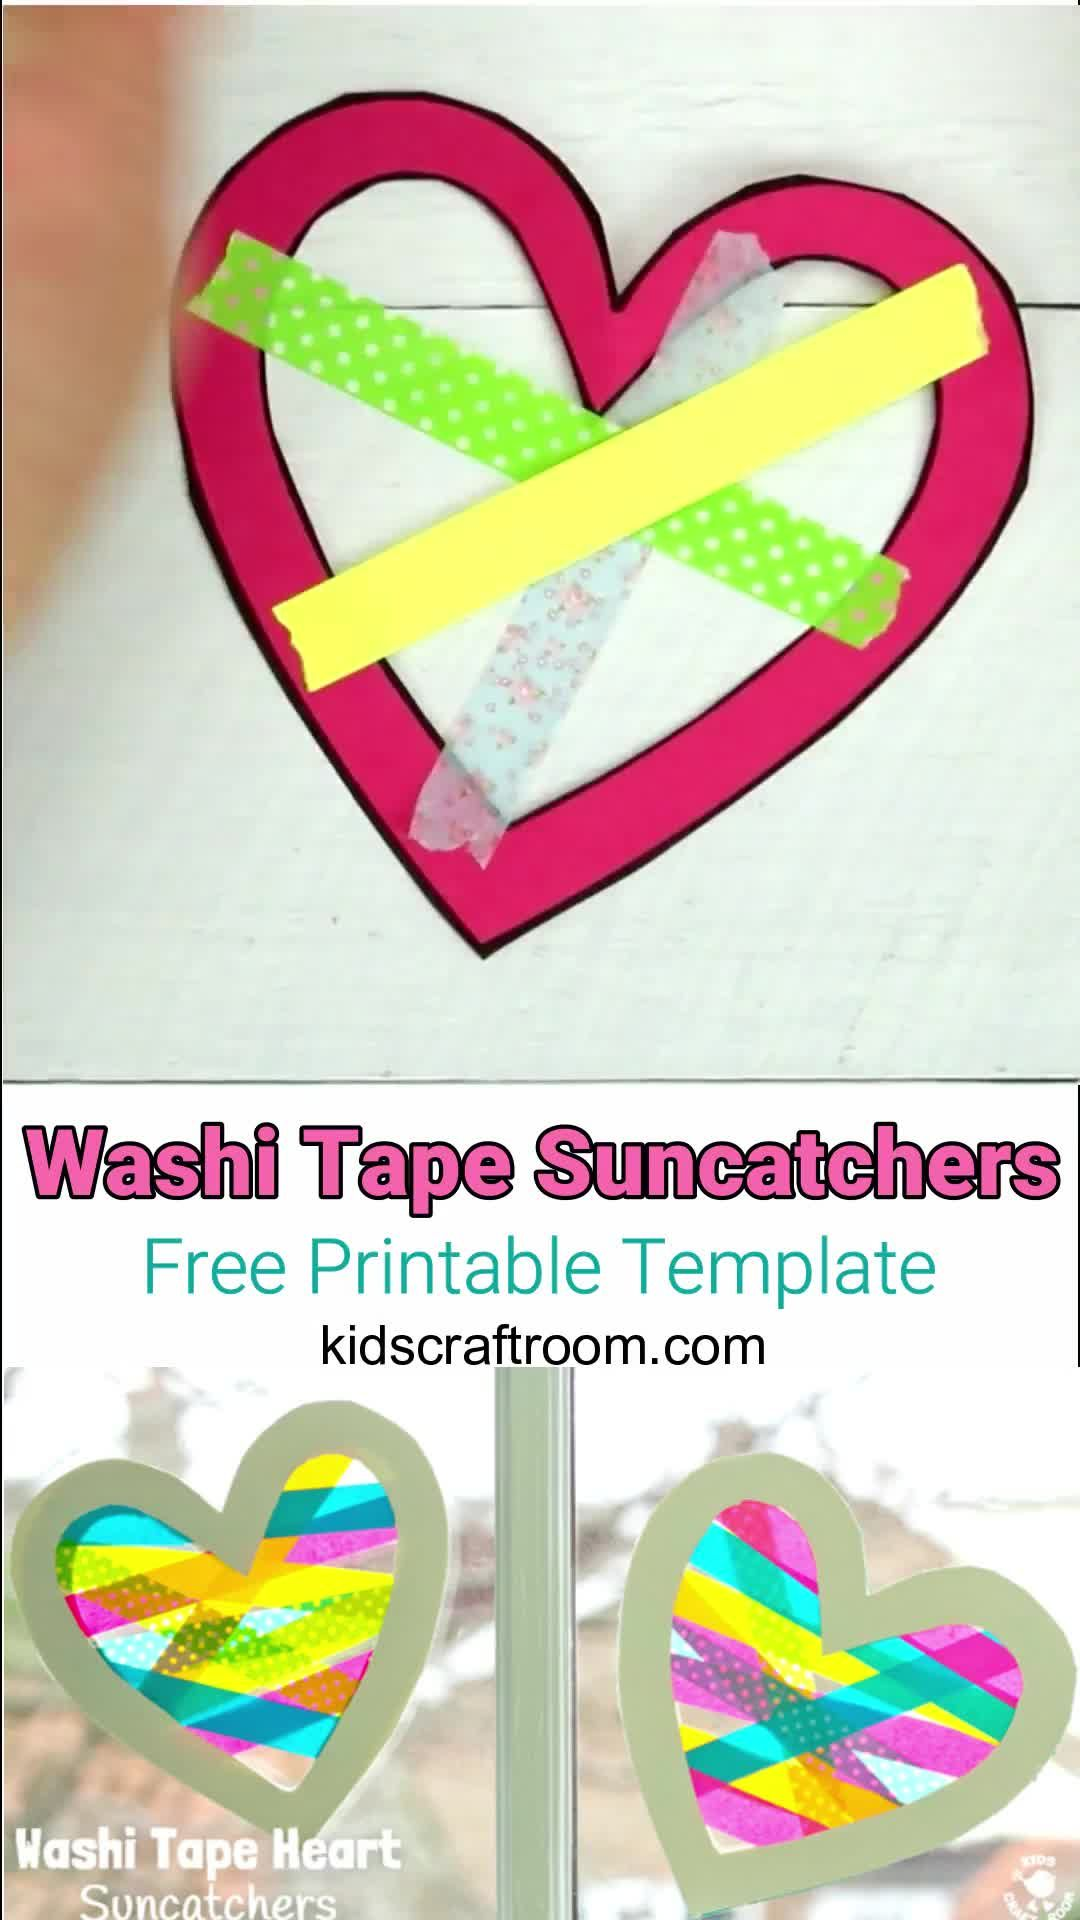 Washi Tape Heart Suncatcher